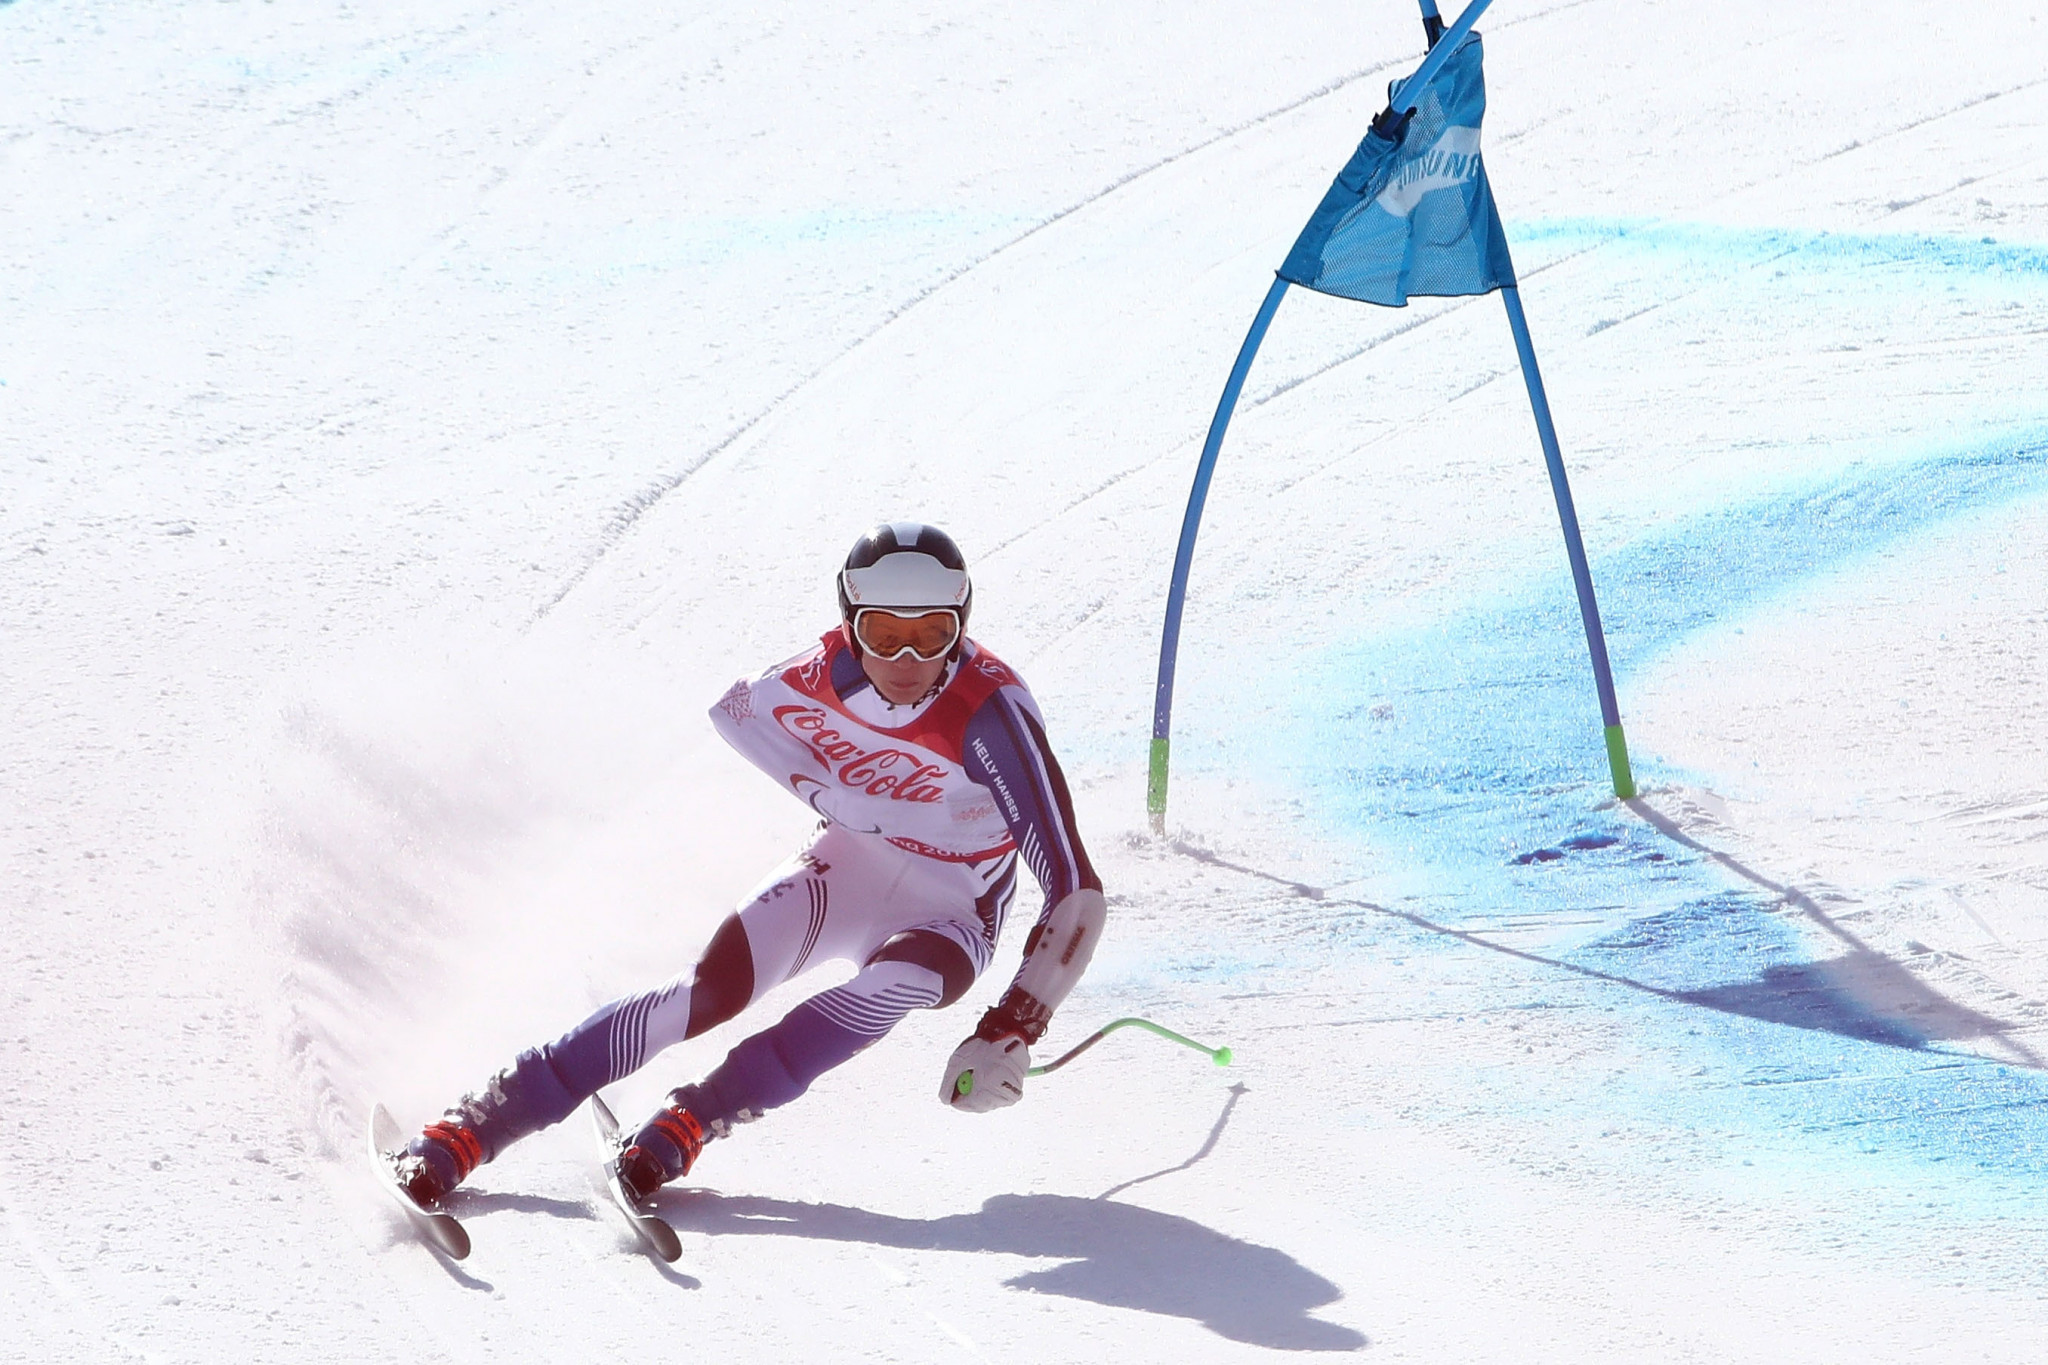 Home favourite Gmur claims men's standing gold at World Para Alpine Skiing World Cup in Veysonnaz